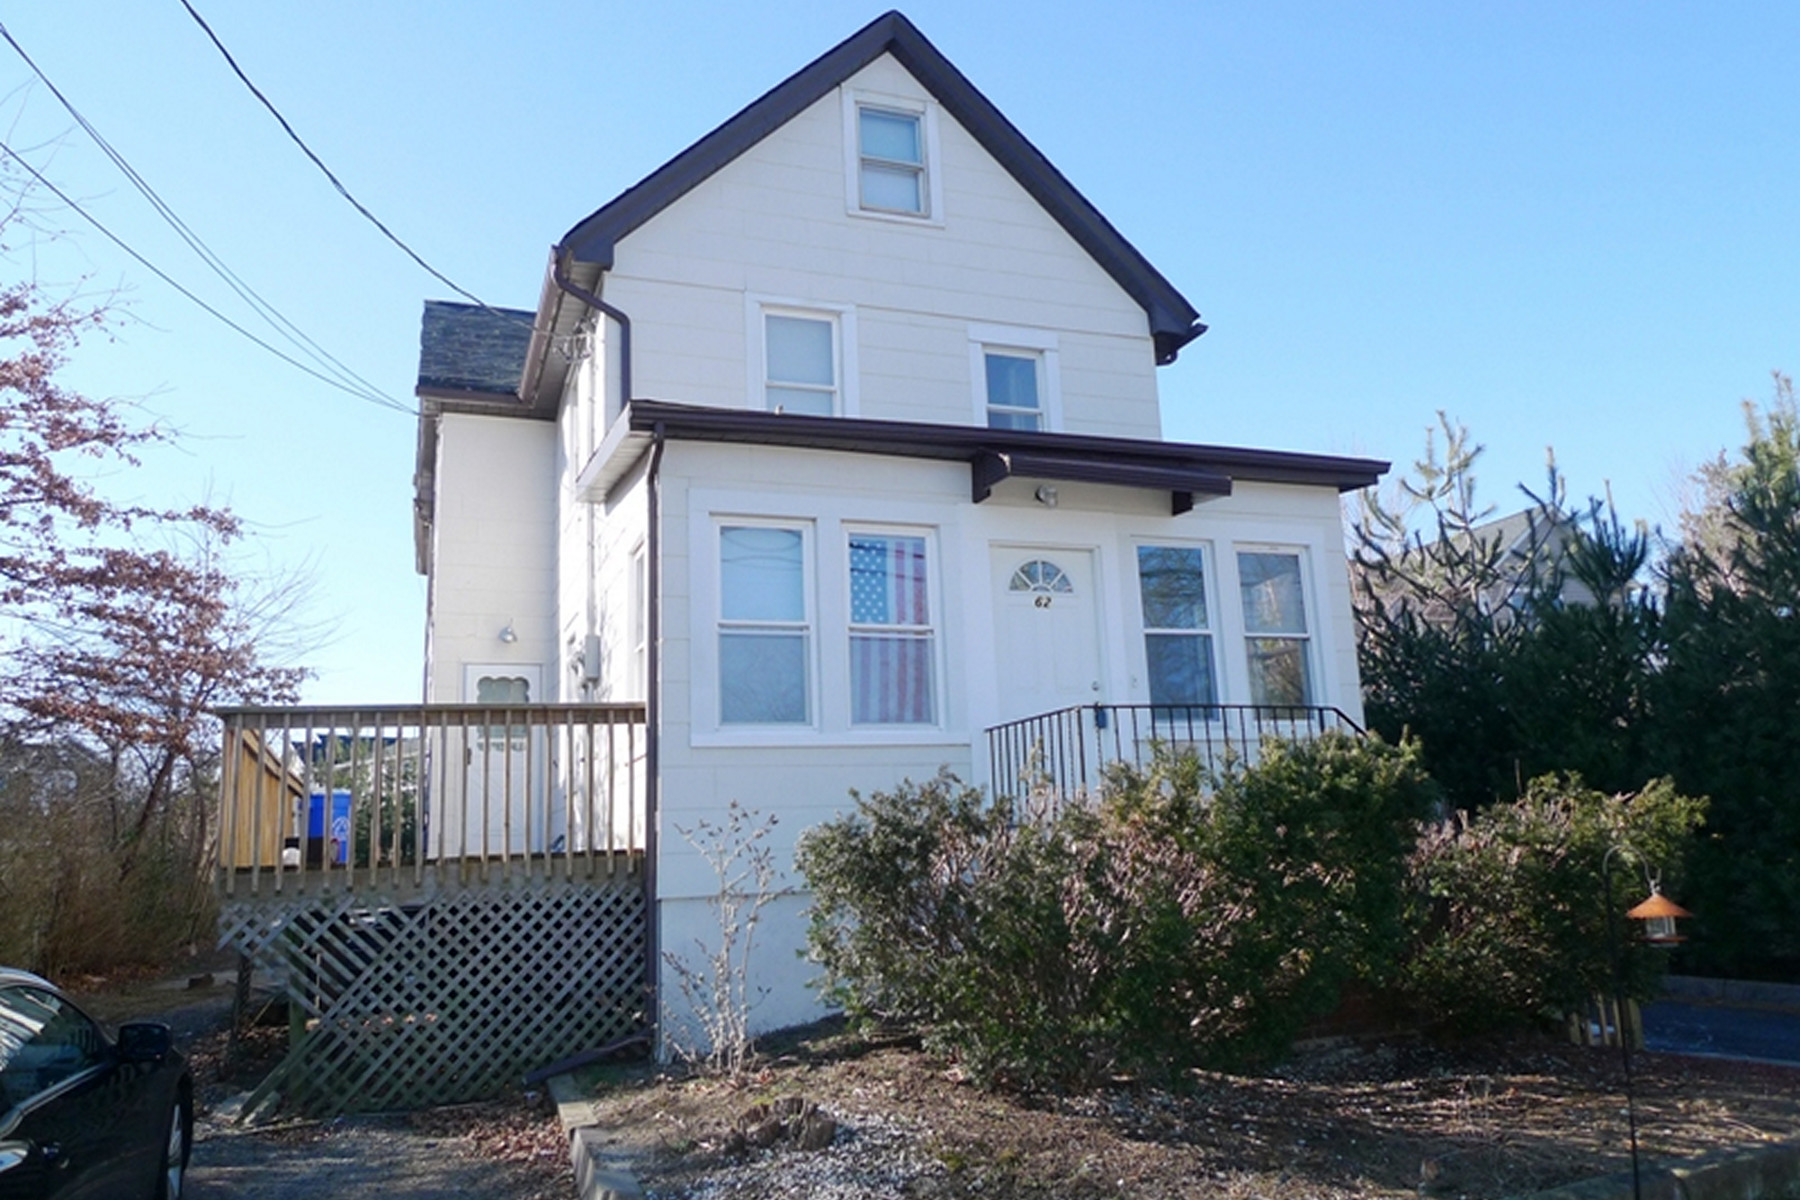 Multi-Family Home for Rent at Updated Rental 62 W Mahan St 2nd Fl, Tenafly, New Jersey 07670 United States